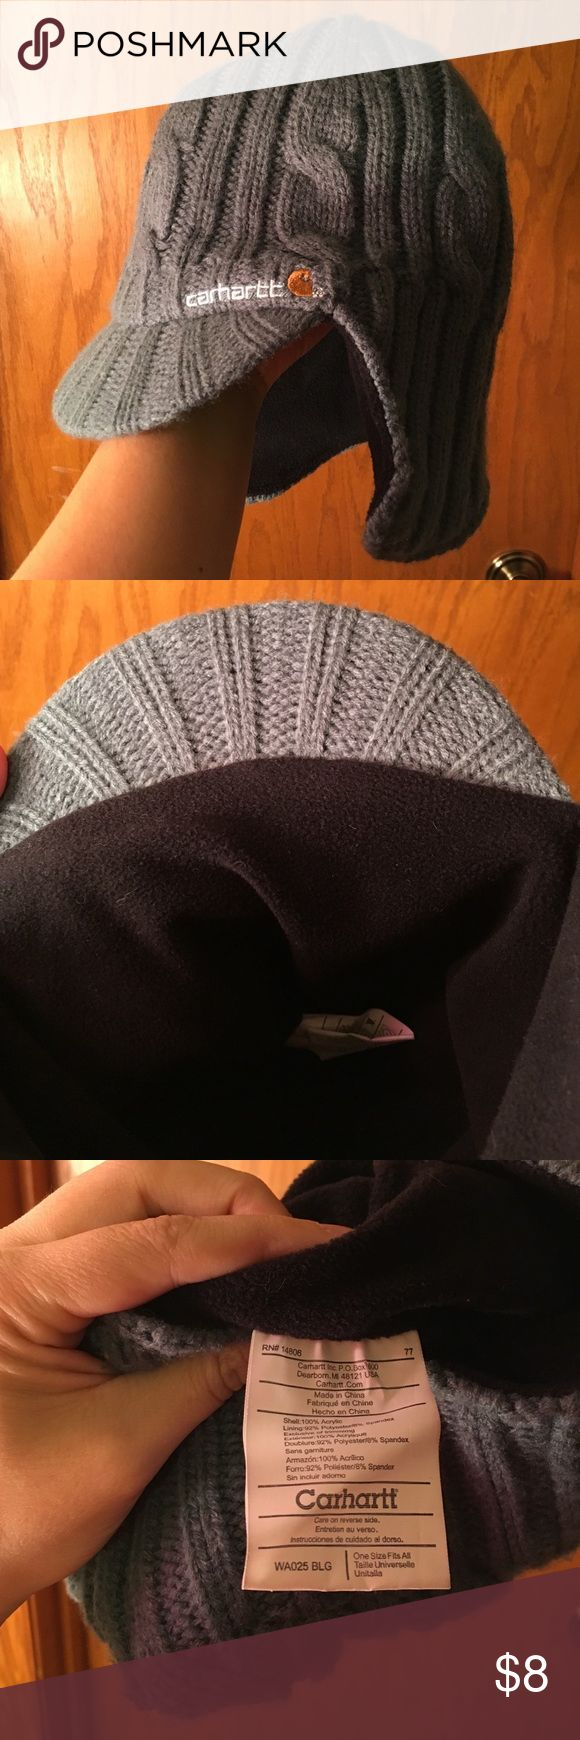 Carhartt winter hat Warm Carhartt women's cap.  Sweater like exterior, small bill on the front, fleece interior.  That wind won't touch your ears in this cap!  Built to famous Carhartt standards.  Worn once. Carhartt Accessories Hats